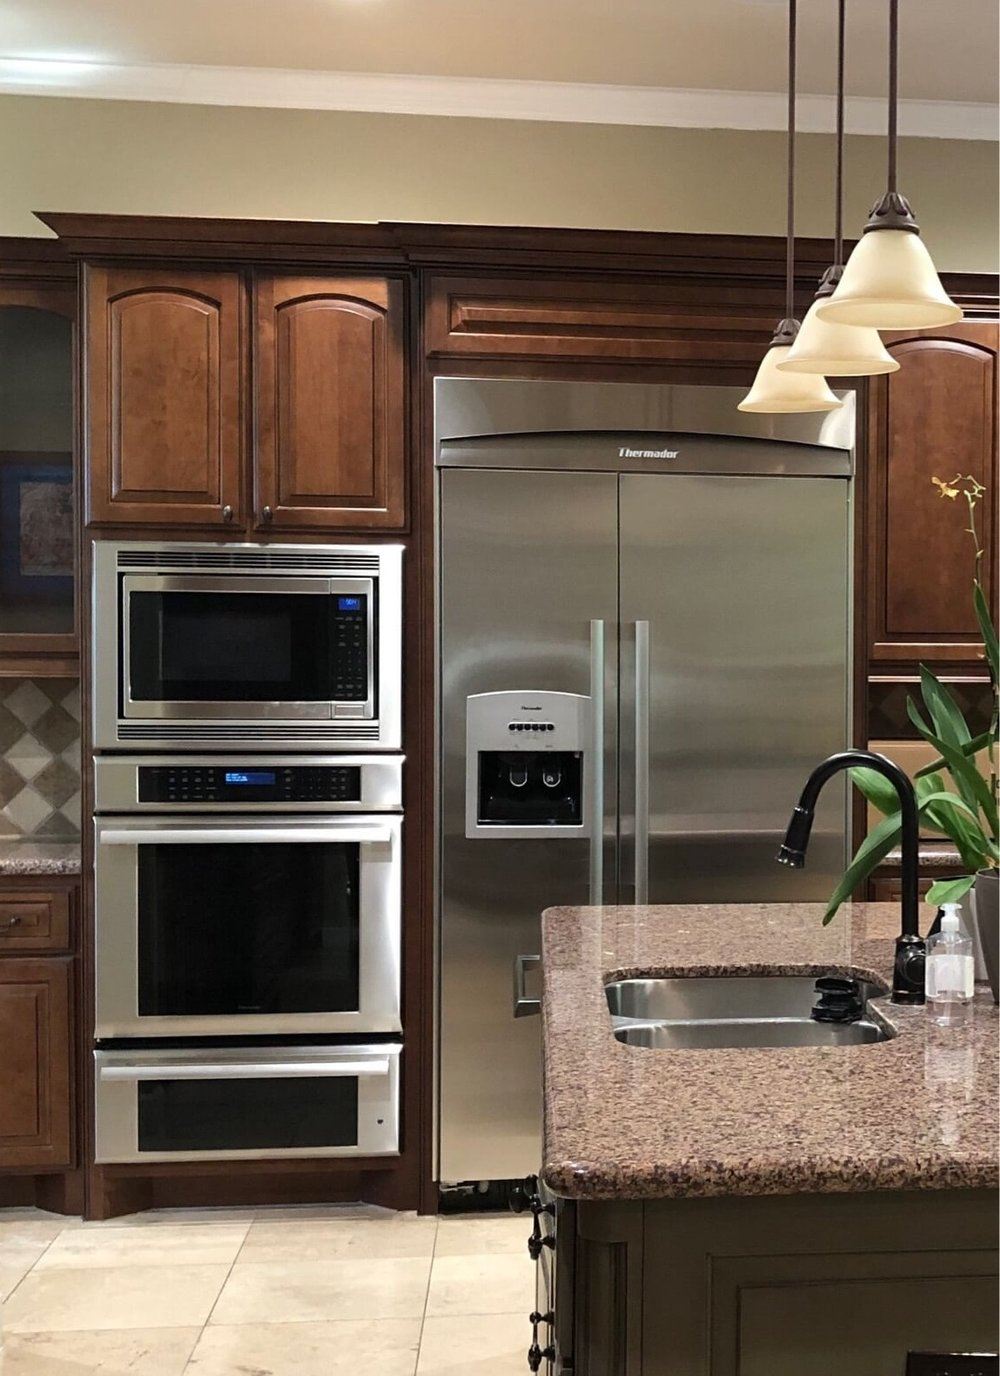 What To Upgrade In Your New Builder Home And What NOT To | Image: Before Remodel - Cabinets above the fridge stored nothing!